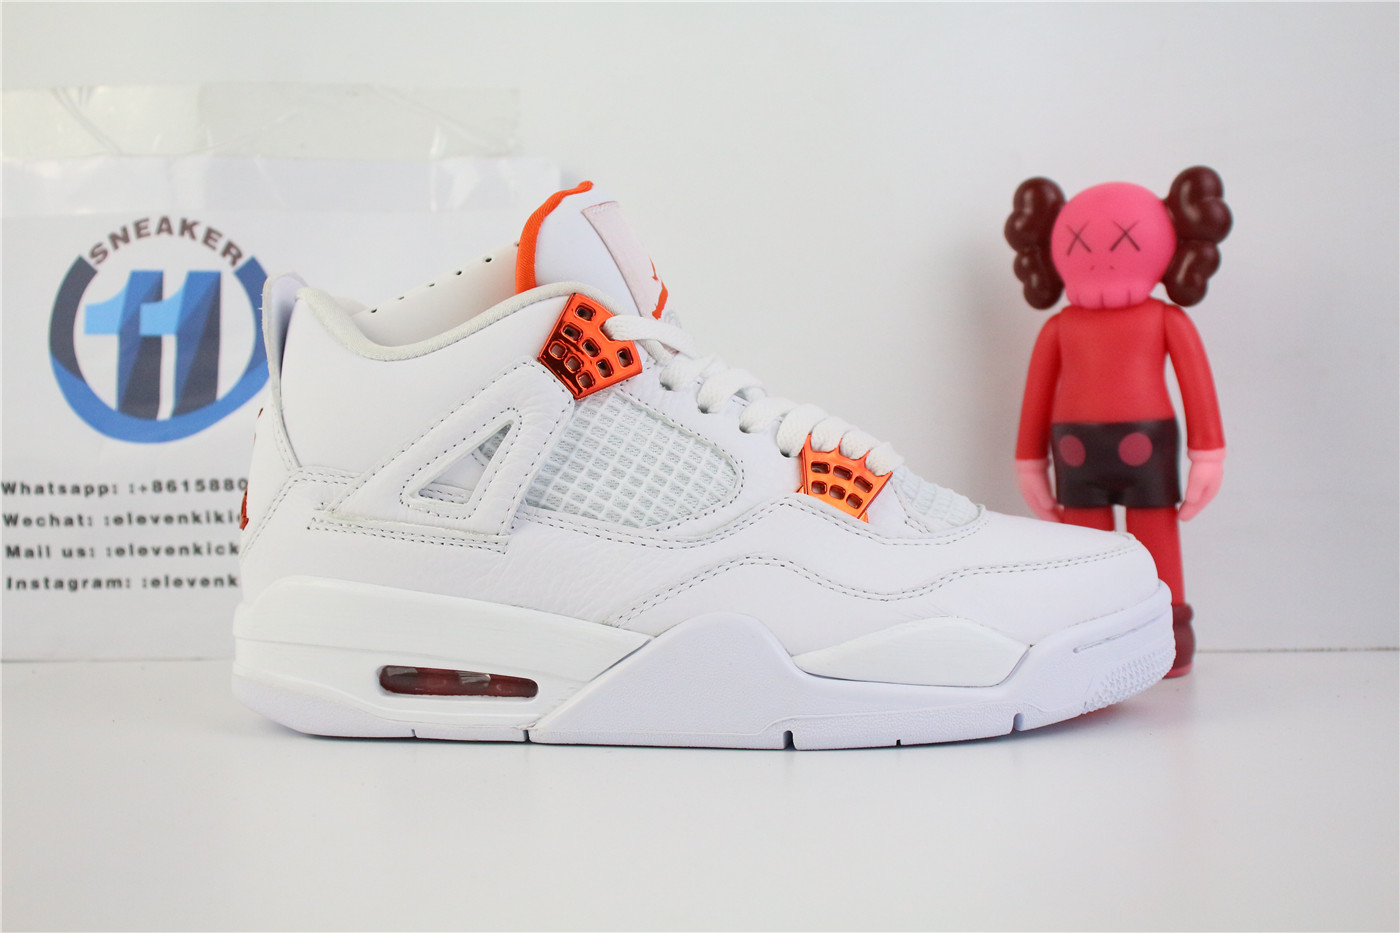 Air Jordan 4 Retro Metallic Orange CT8527-114